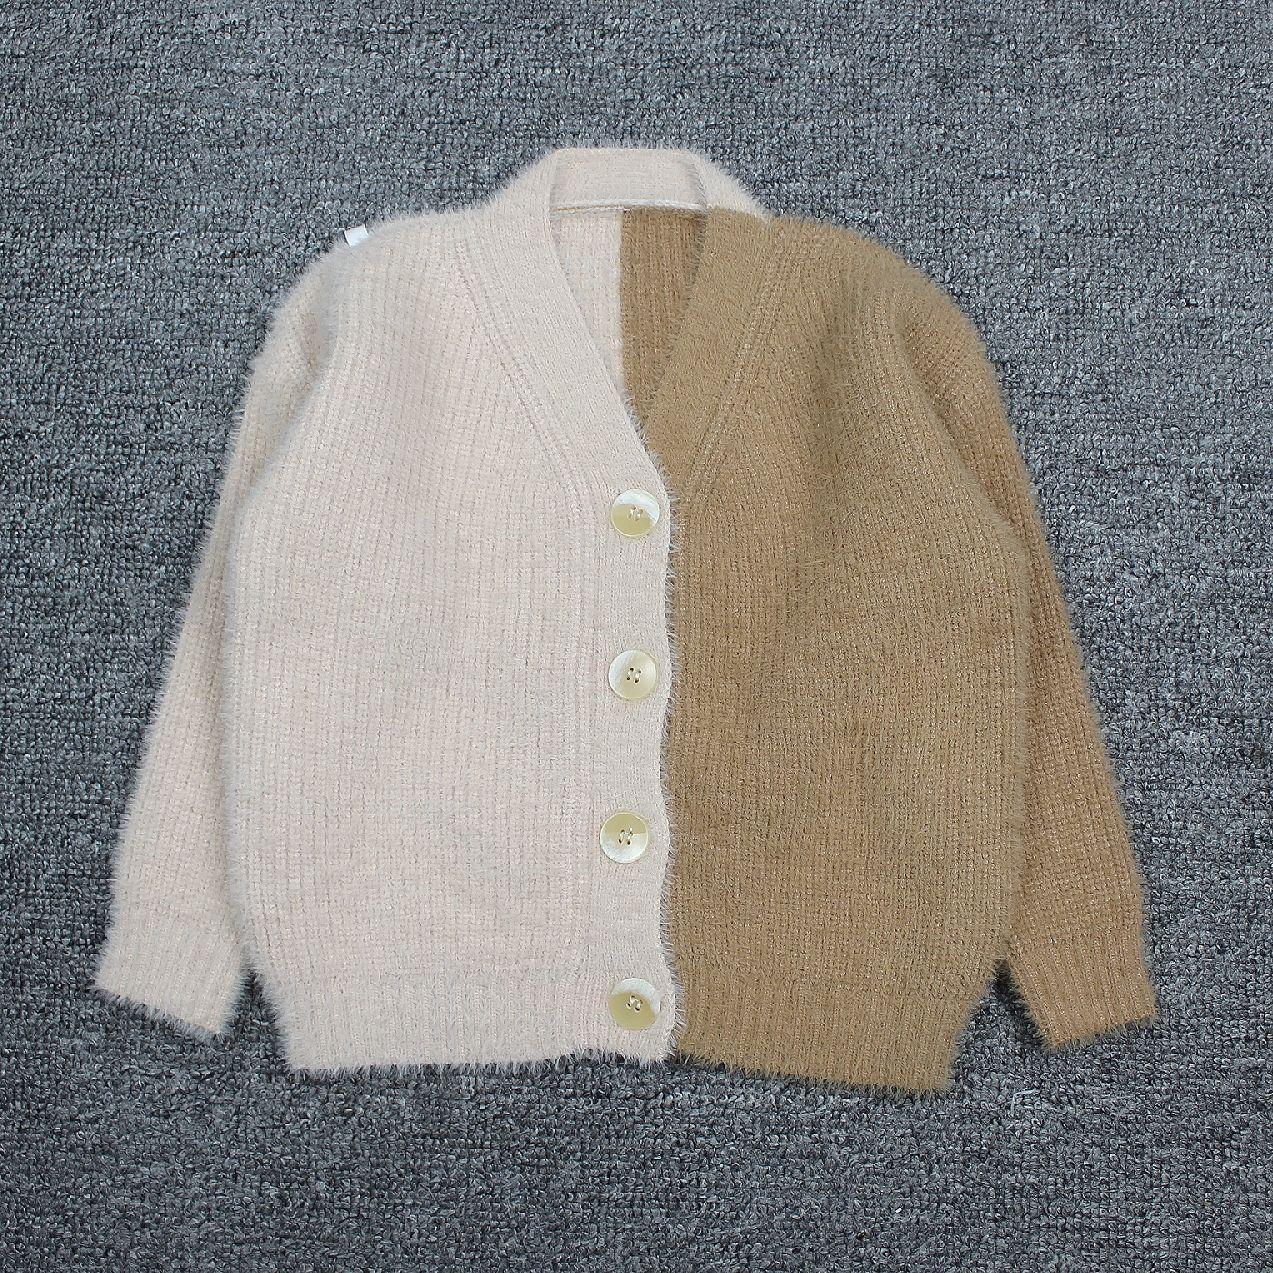 2019 autumn Baby knit Sweaters children Brown Beige Colorblock mohair Cardigan Toddler girls sweater Kids Clothes age 2 3 4 6 8 in Sweaters from Mother Kids